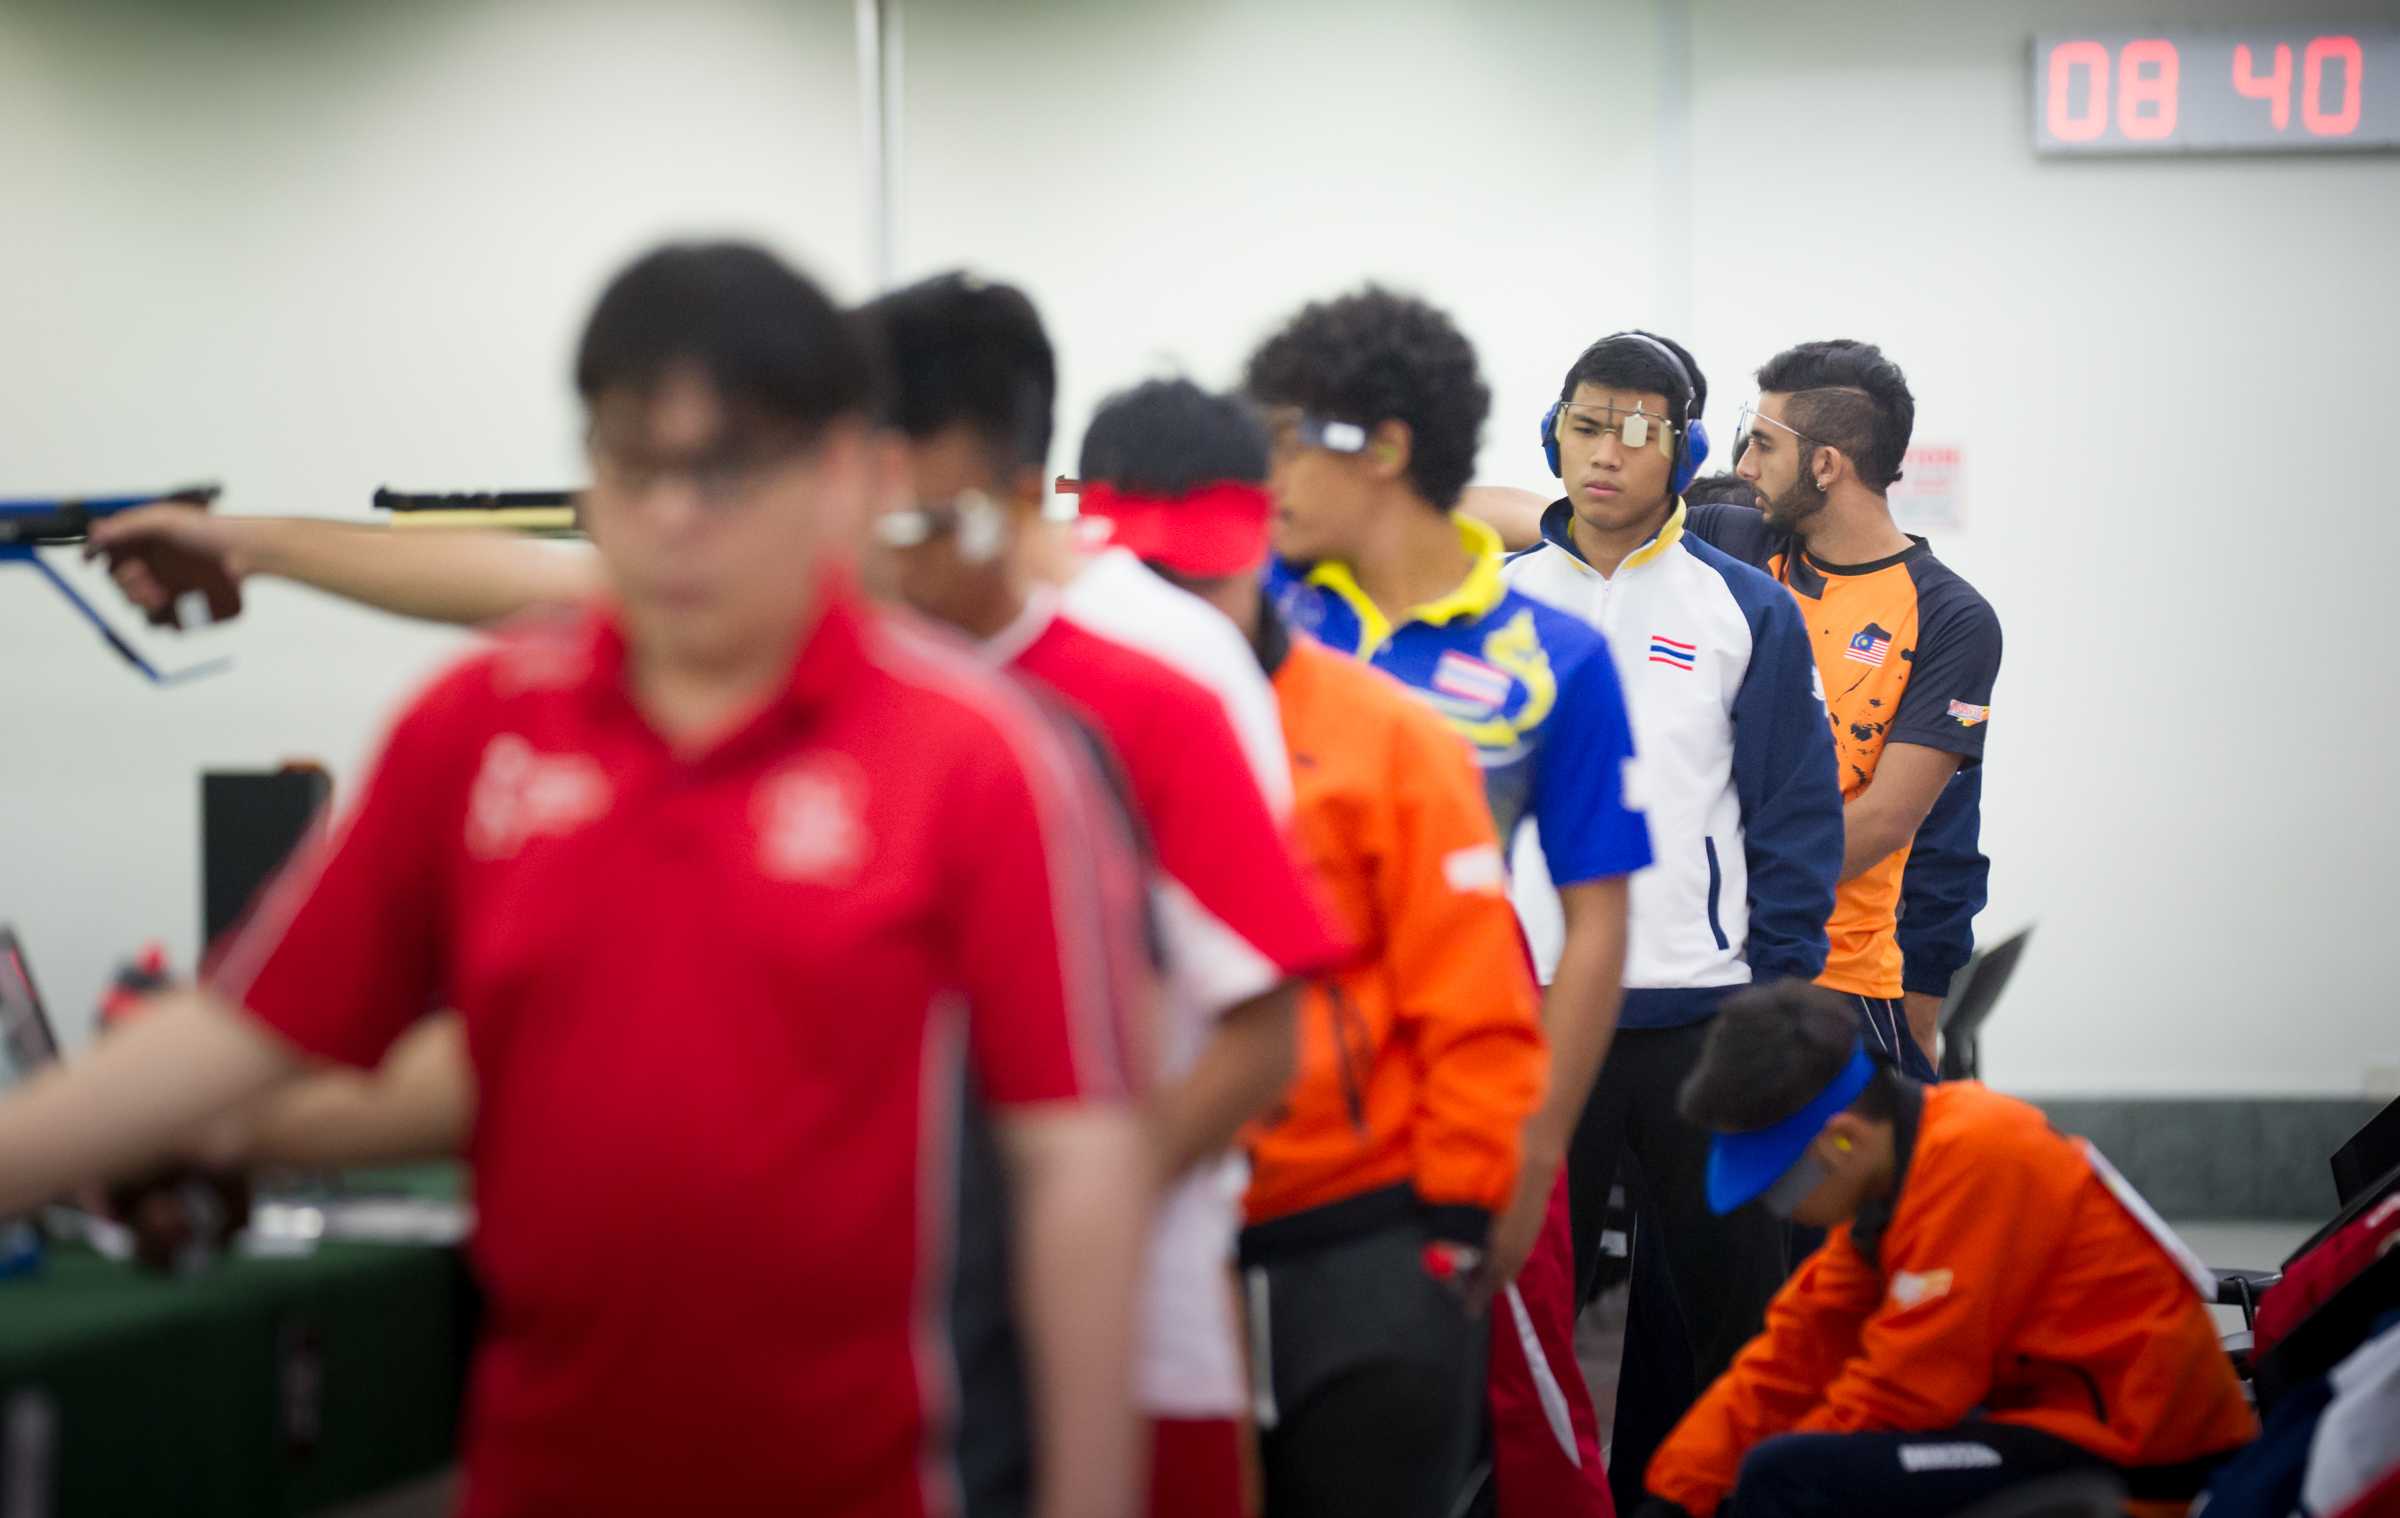 A Thai shooter recomposes himself during the shooting competition of the ASEAN University Games at Yishun SAFRA.